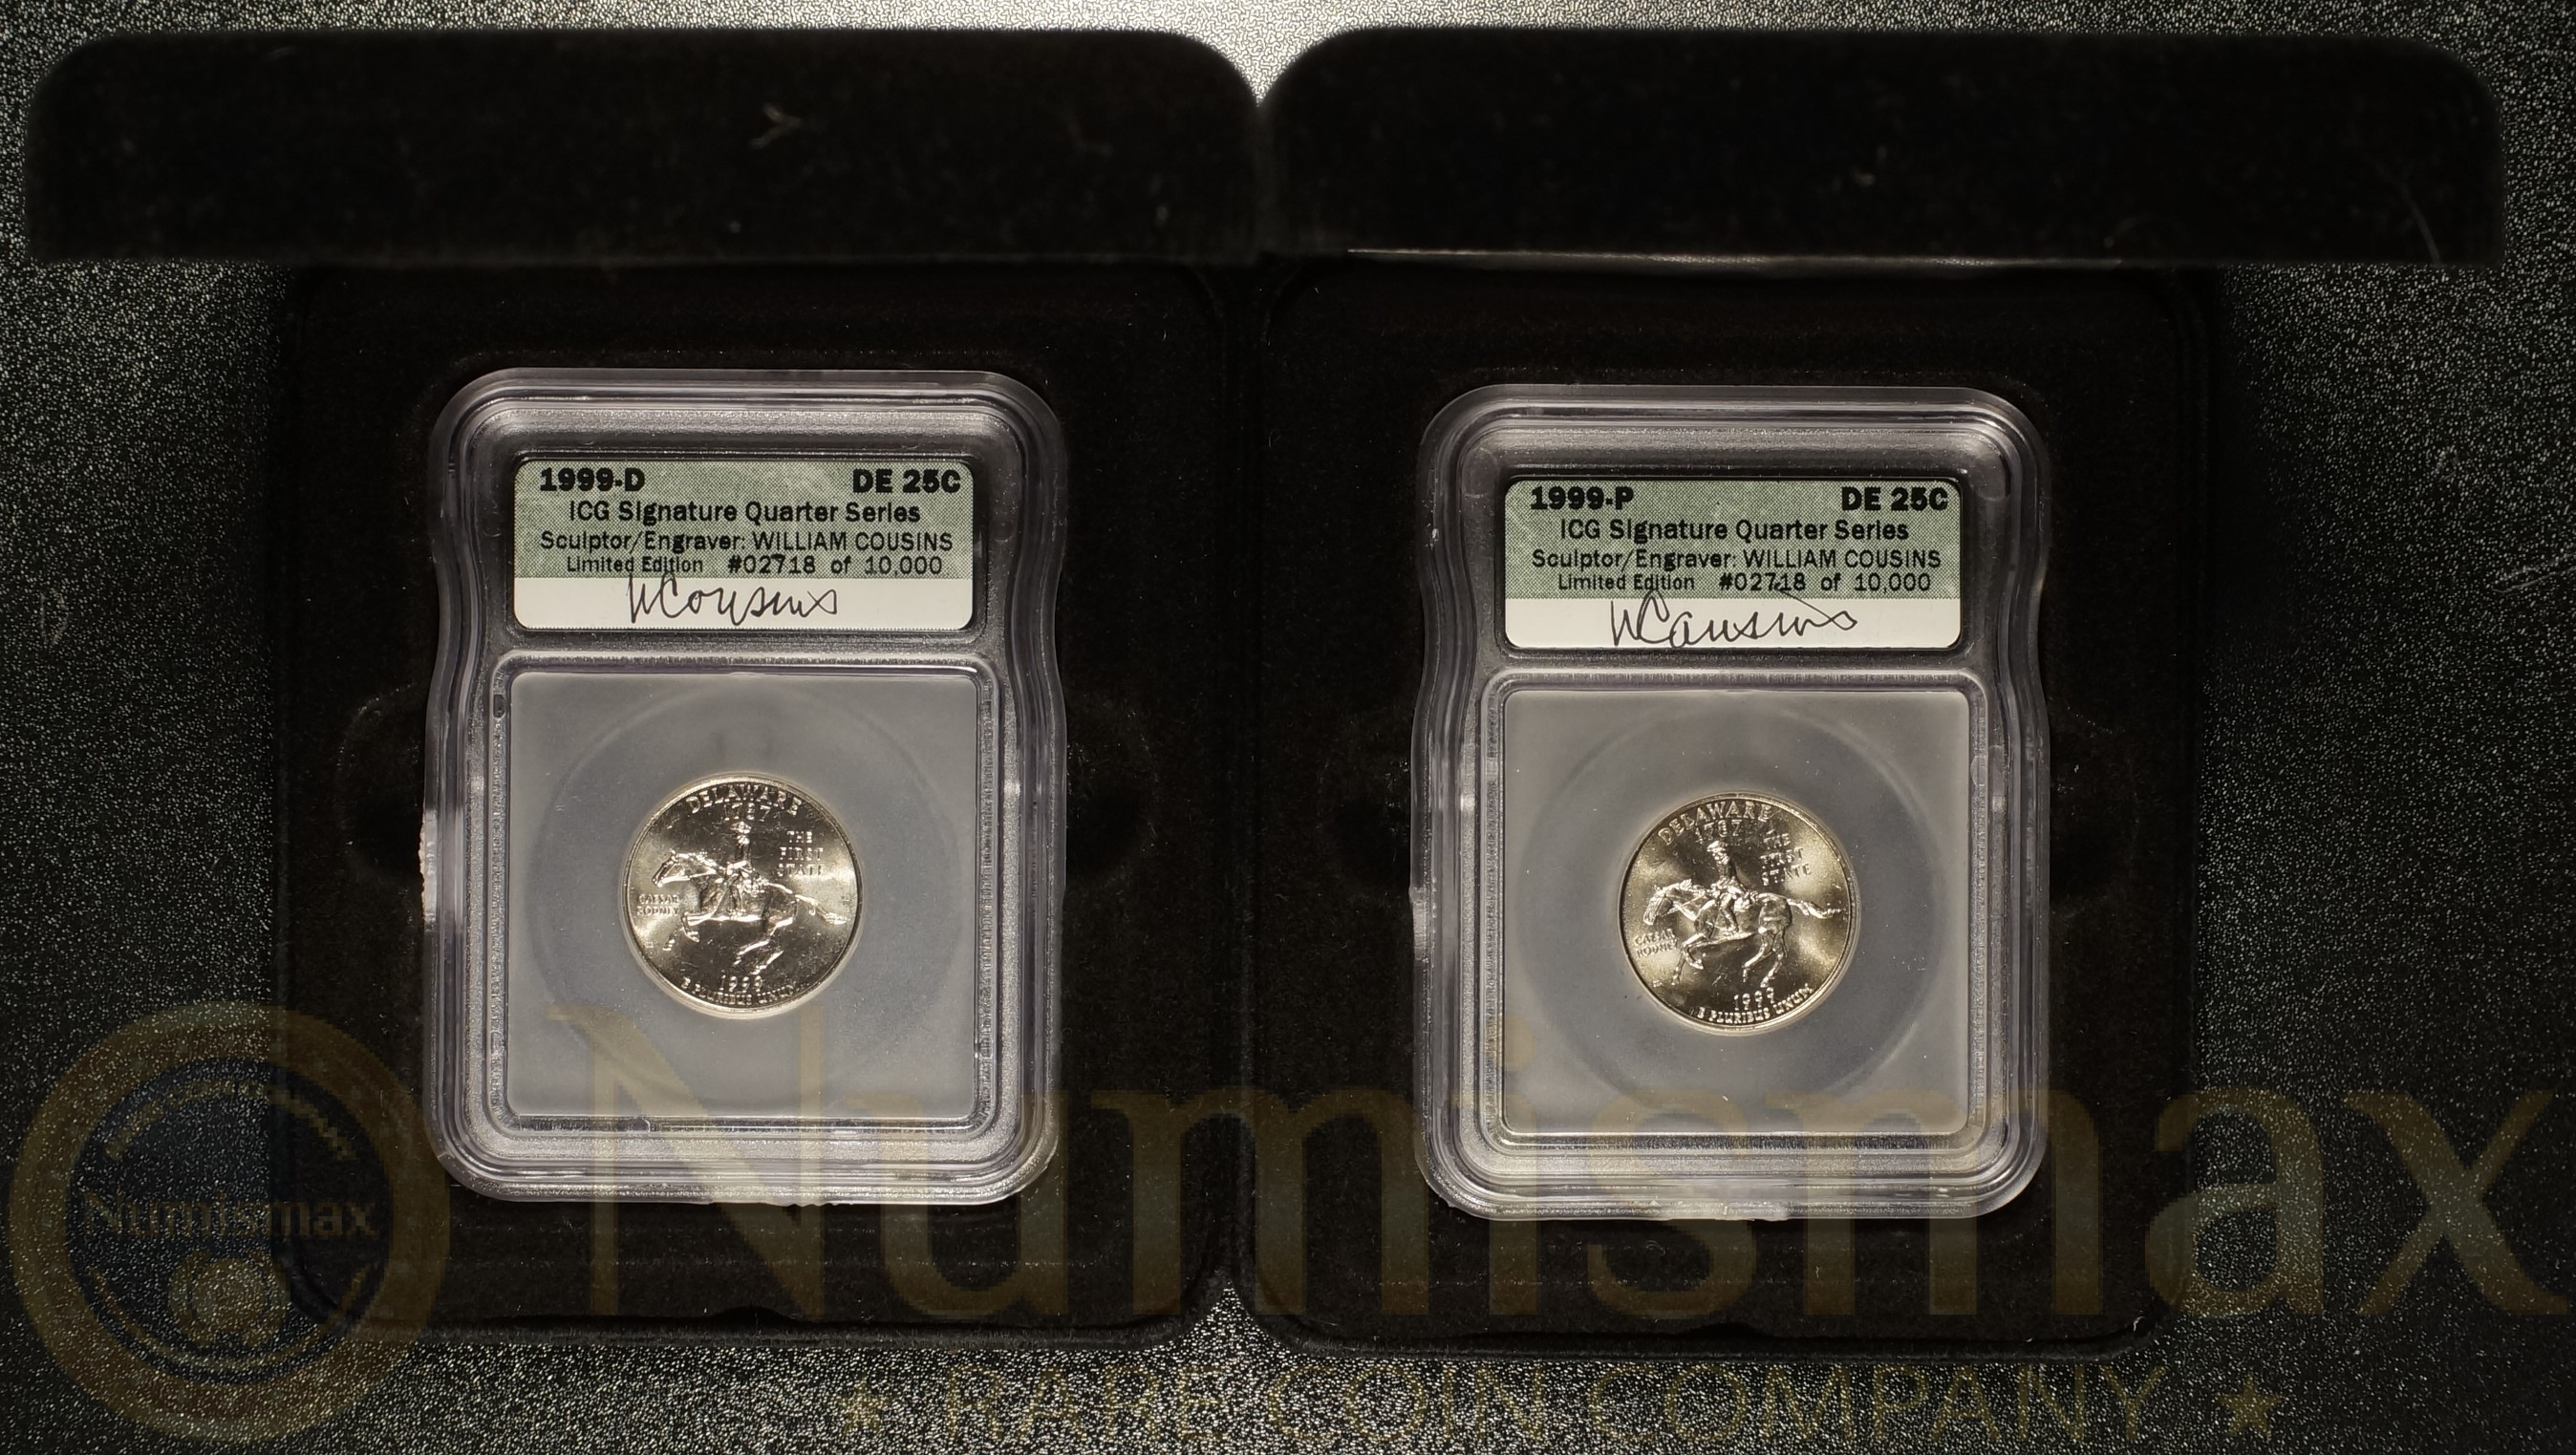 1999 D&P Delaware State Quarters ICG Signature William Cousins | Two Coin  Lot